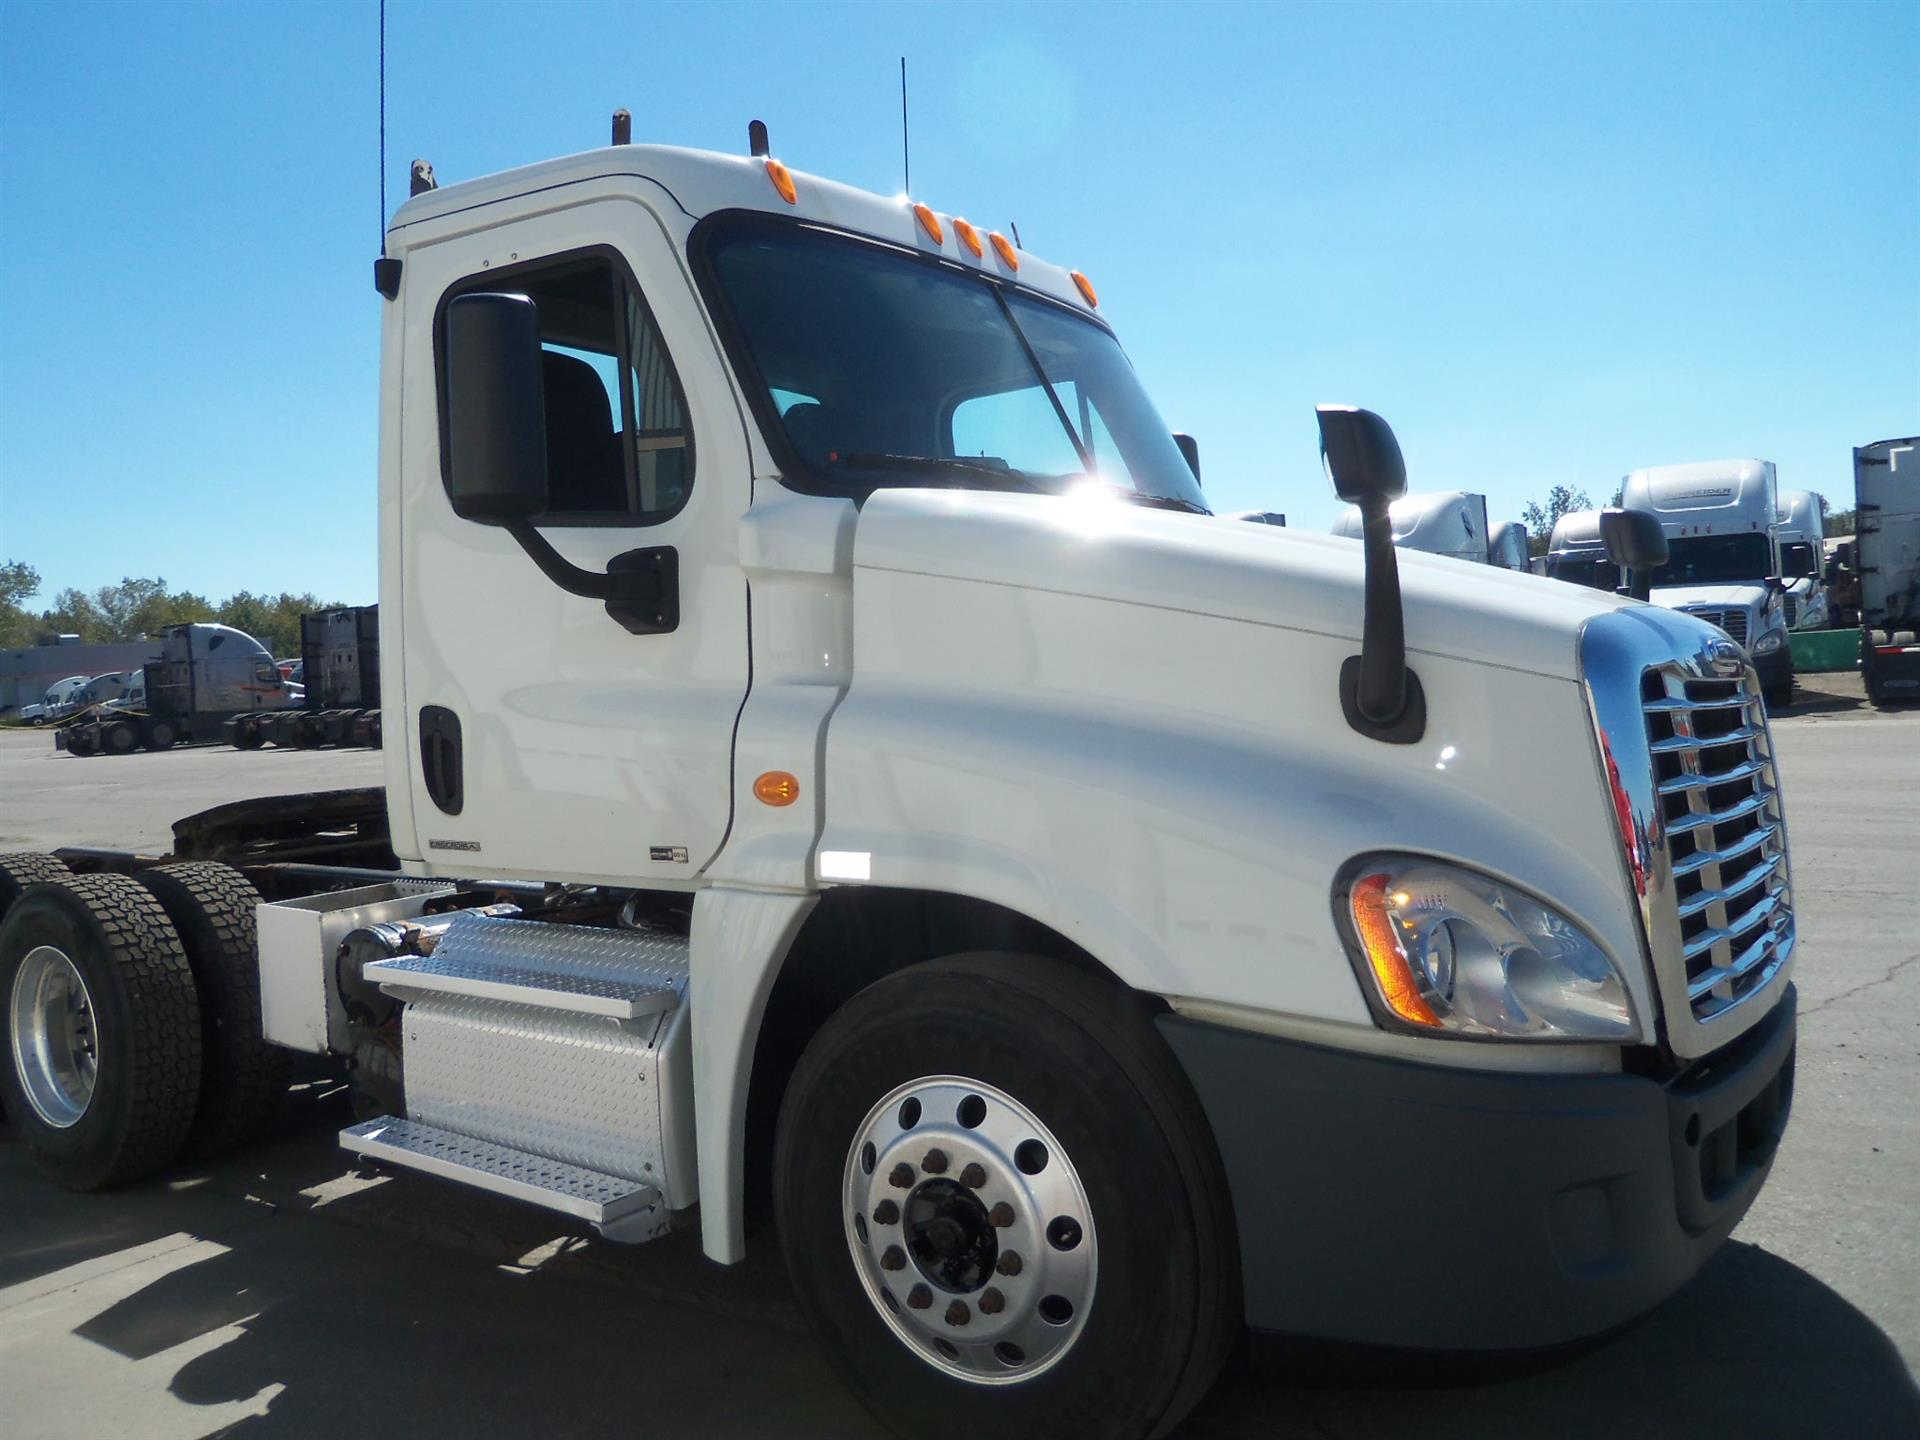 USED 2011 FREIGHTLINER CASCADIA DAYCAB TRUCK #133227